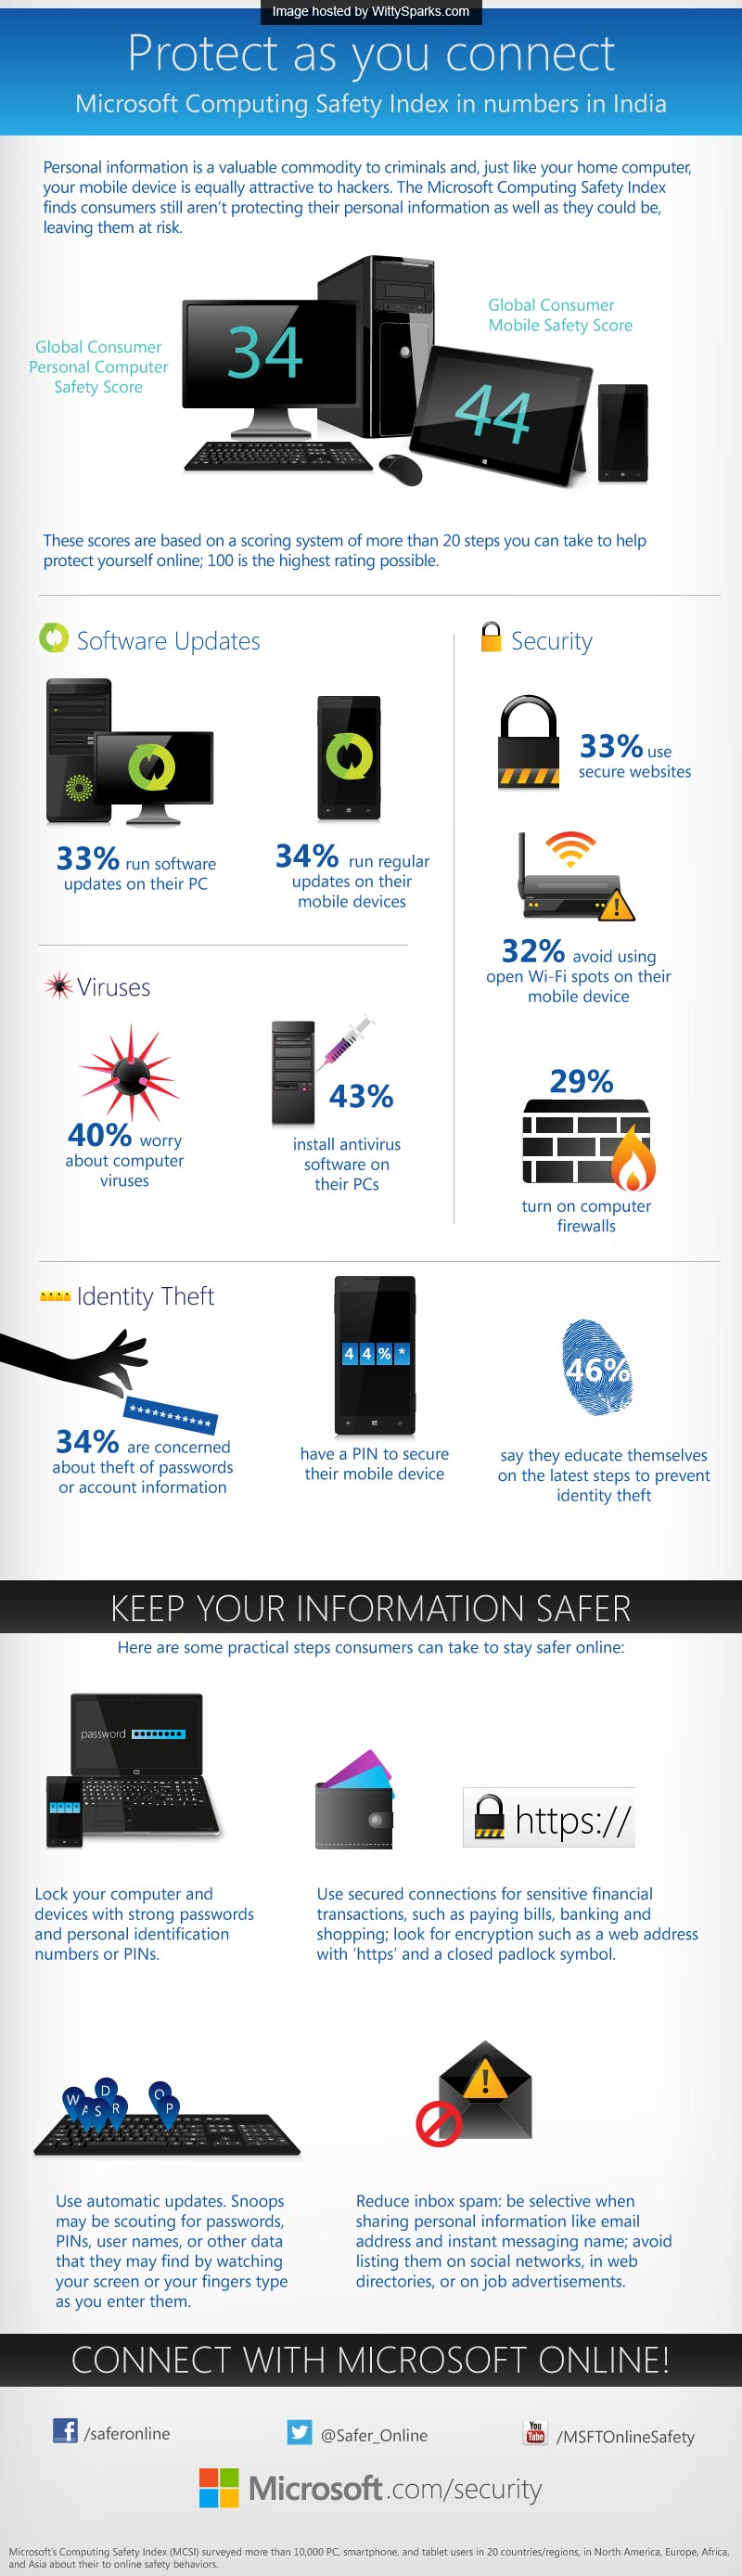 Microsoft Computing Safety Index trying to create Safer Internet Day (Feb 05)